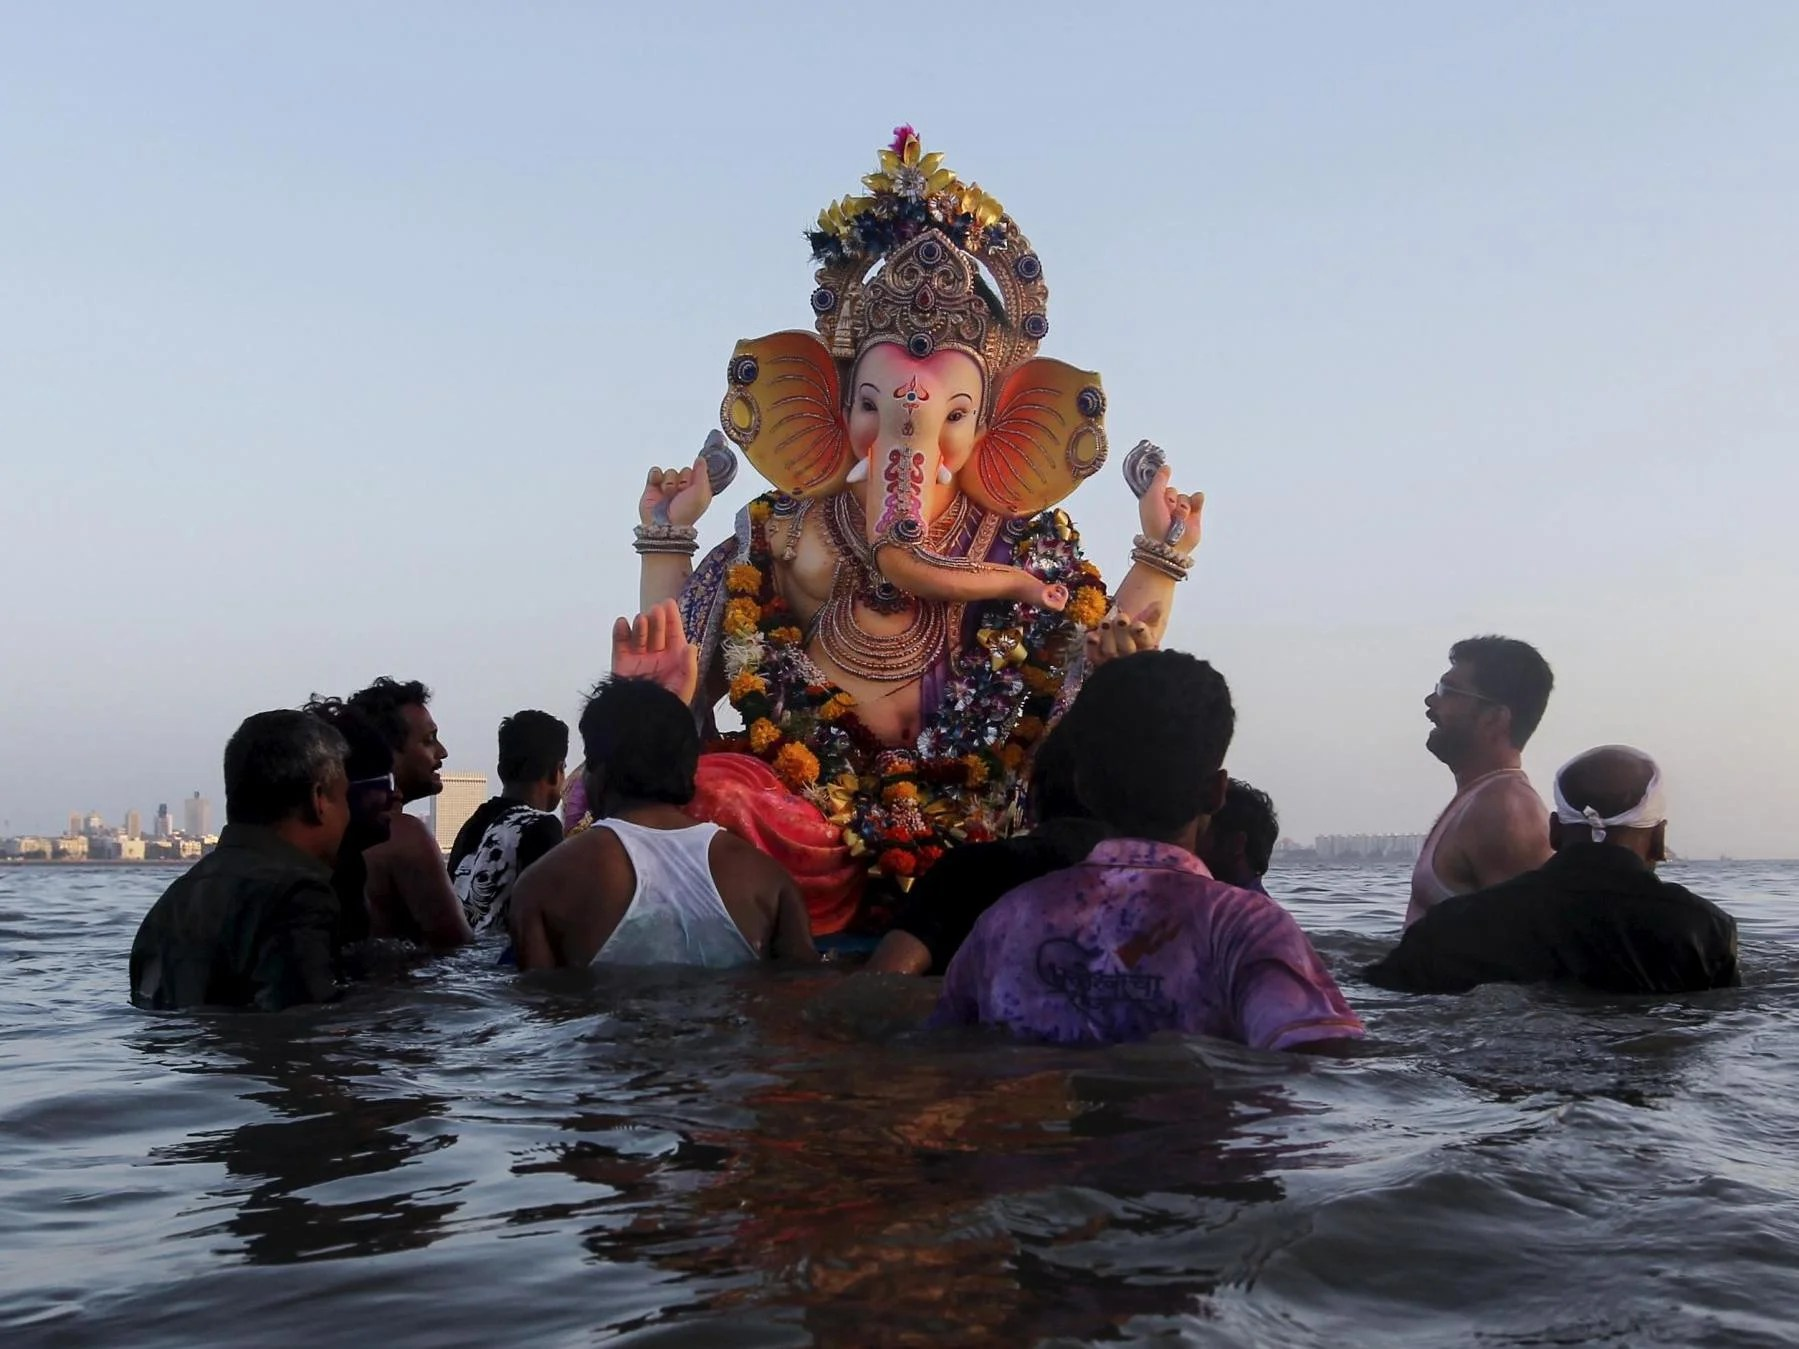 Ganesh Chaturthi What Is The Hindu Festival Celebrating The Elephant Headed God Ganesha The Independent The Independent